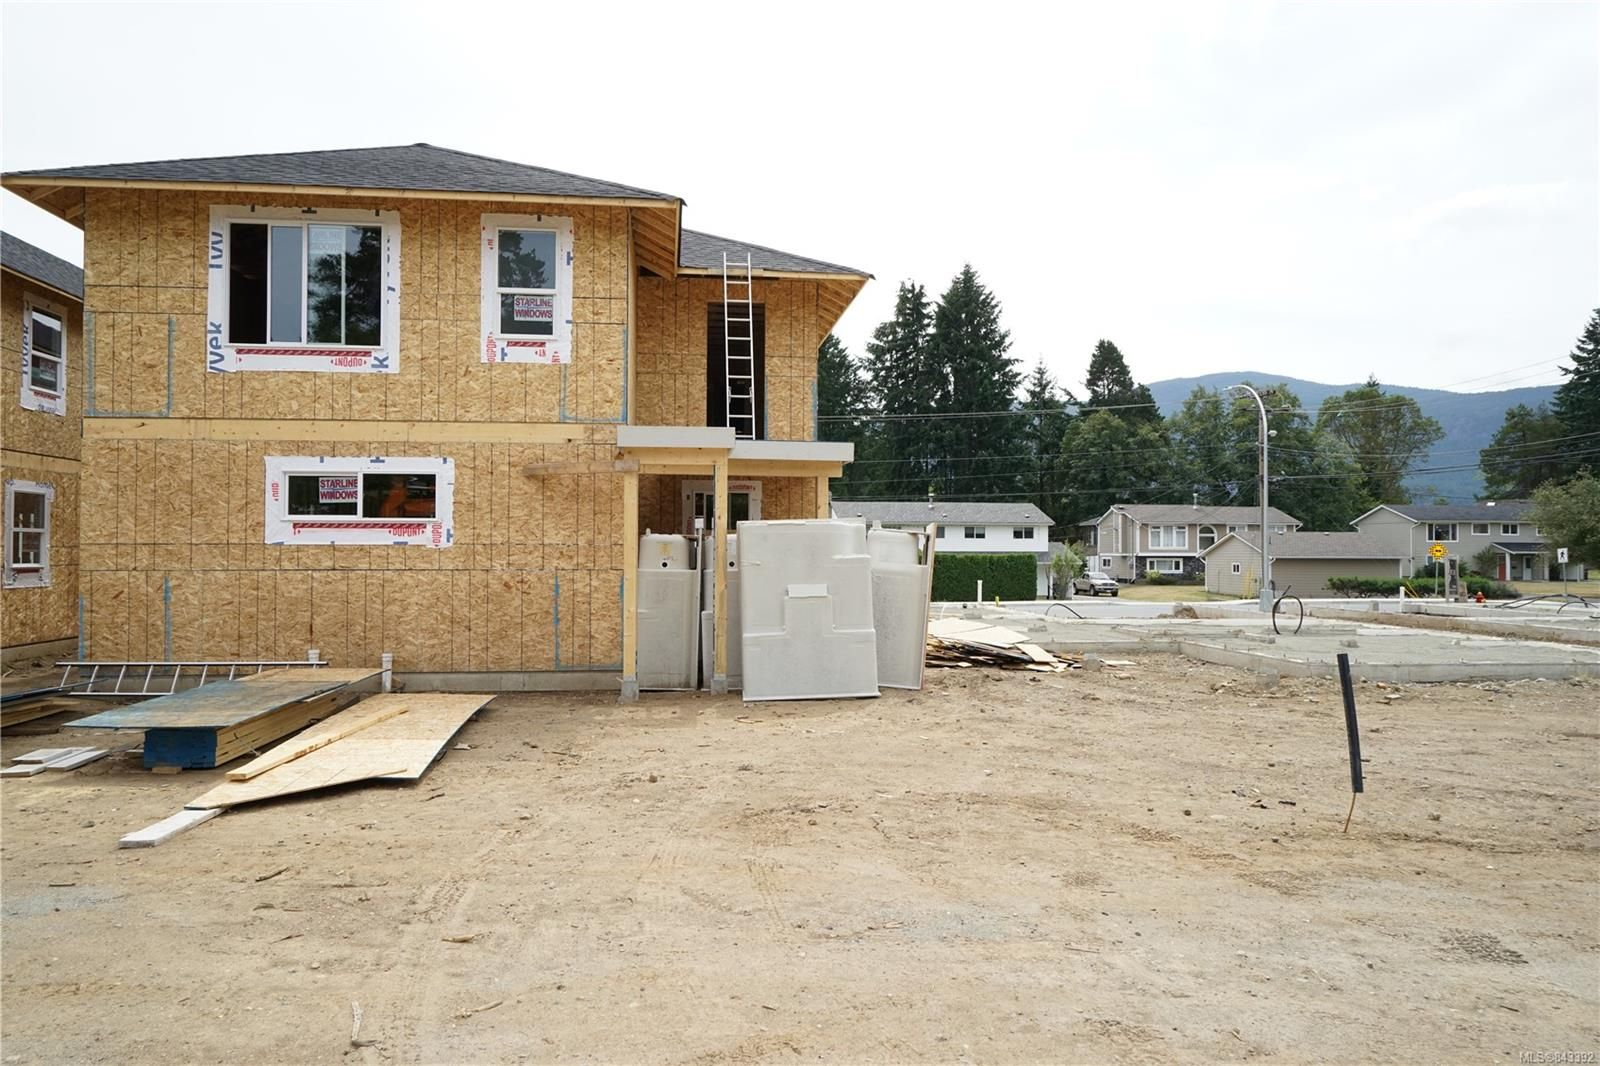 Photo 14: Photos: 2584 Rosstown Rd in NANAIMO: Na Diver Lake House for sale (Nanaimo)  : MLS®# 843392